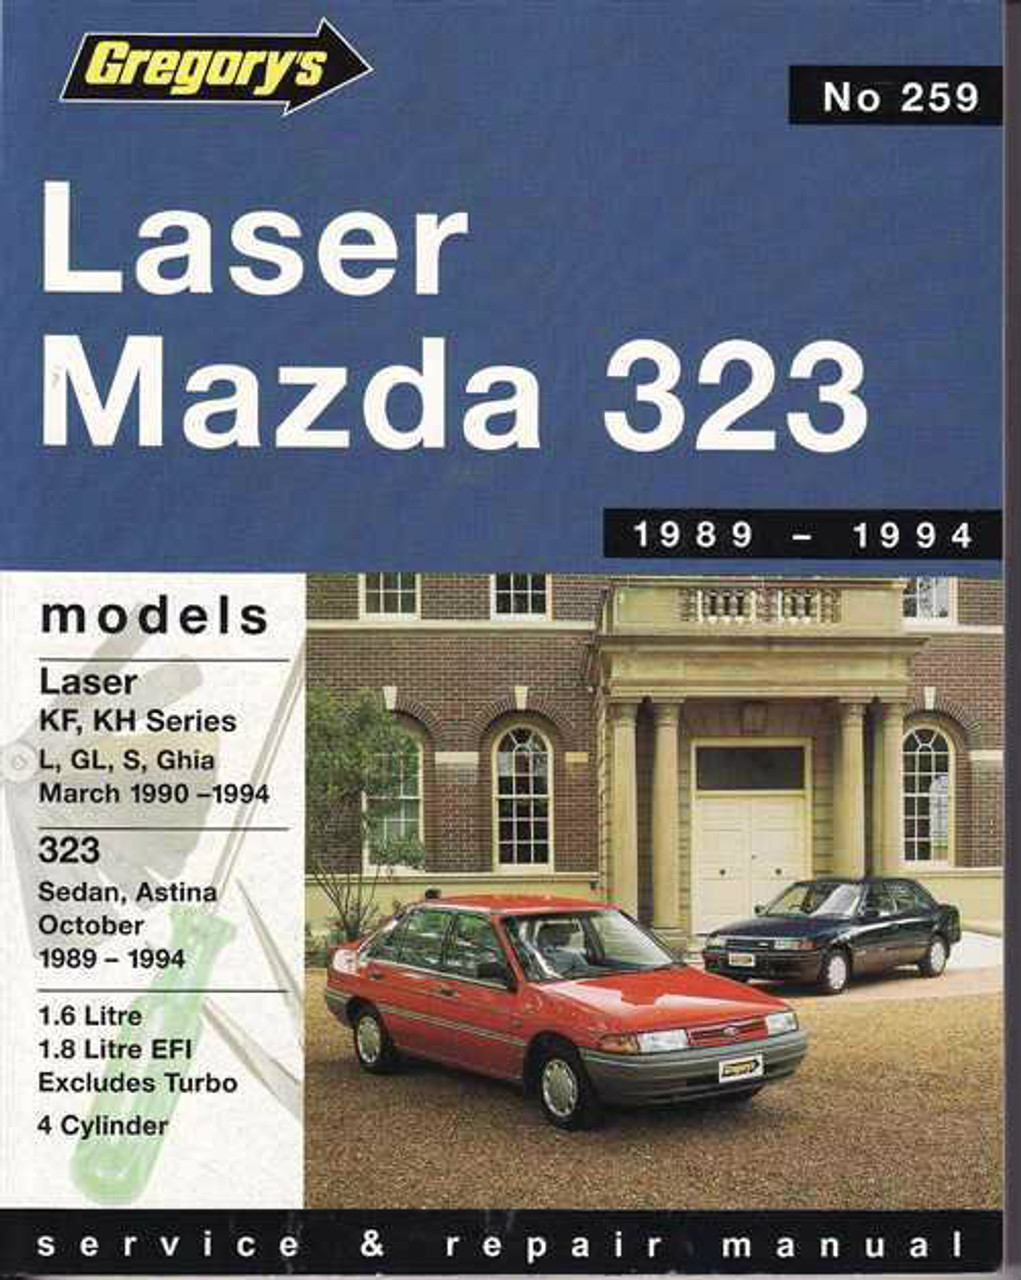 Ford kh laser wiring diagram freddryer ford laser mazda 323 1989 1994 workshop ford kh laser wiring diagram at freddryer asfbconference2016